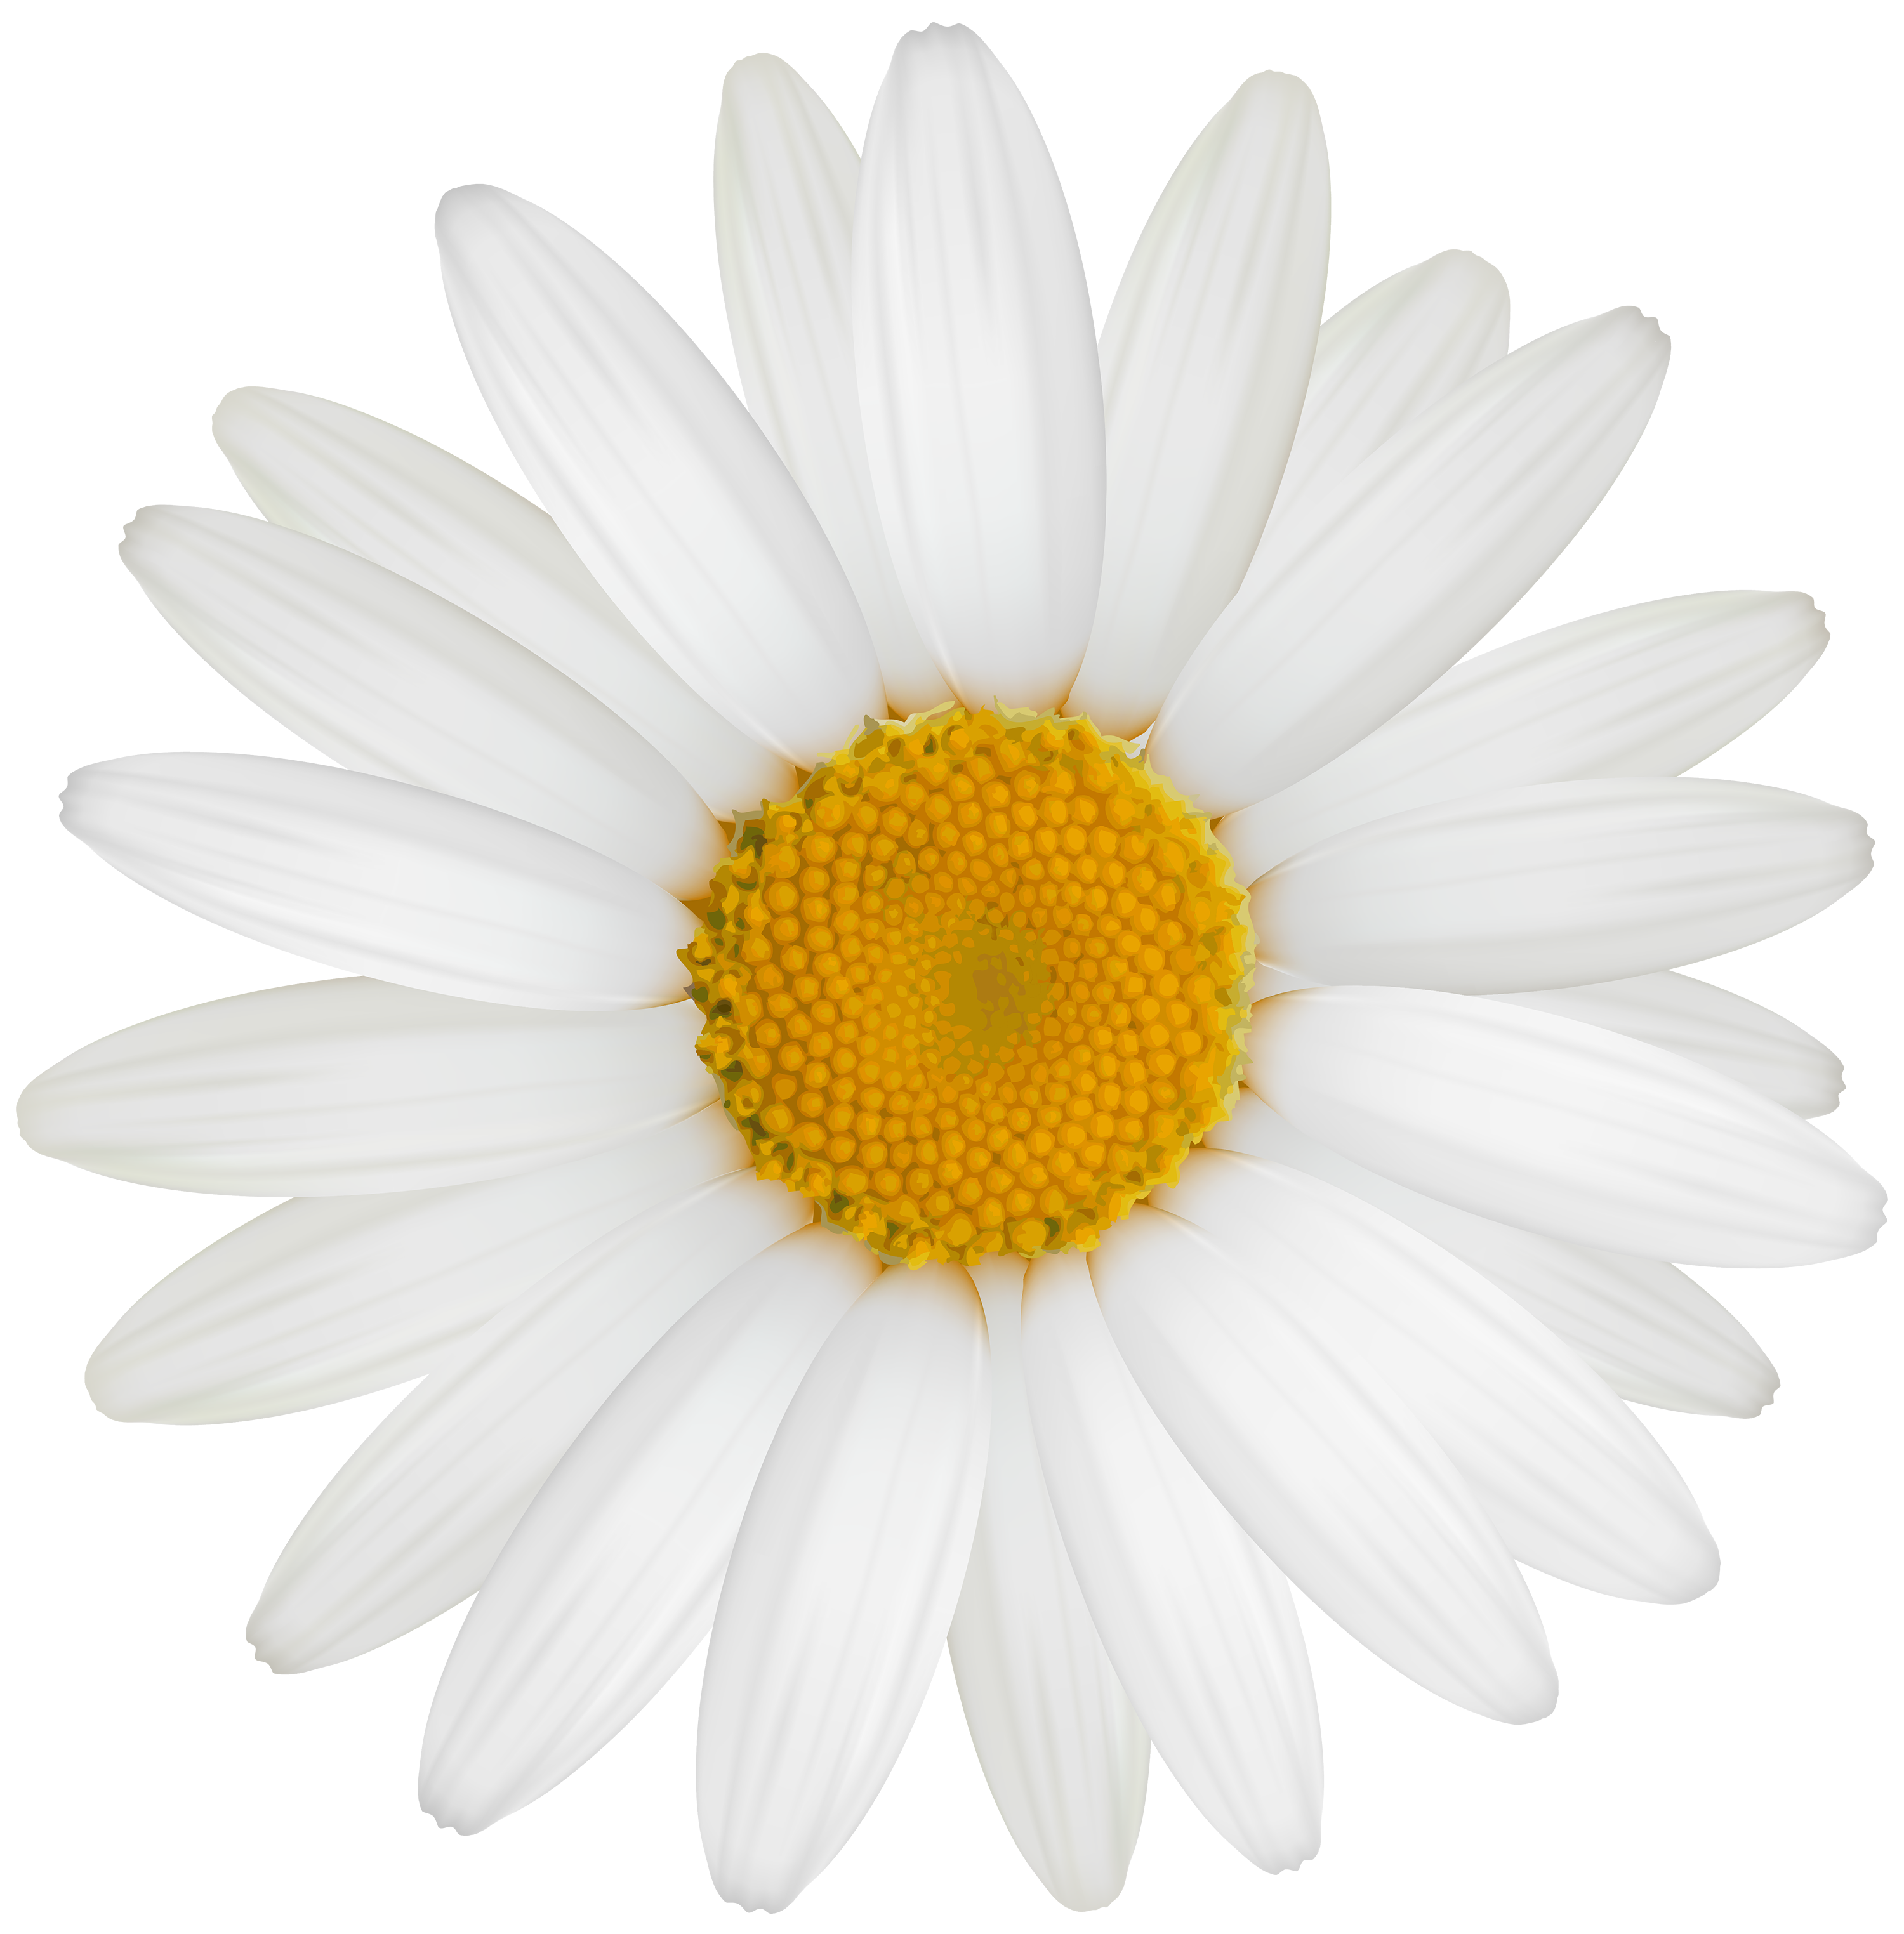 White flower clipart png vector free stock White Daisy PNG Clipart - Best WEB Clipart vector free stock